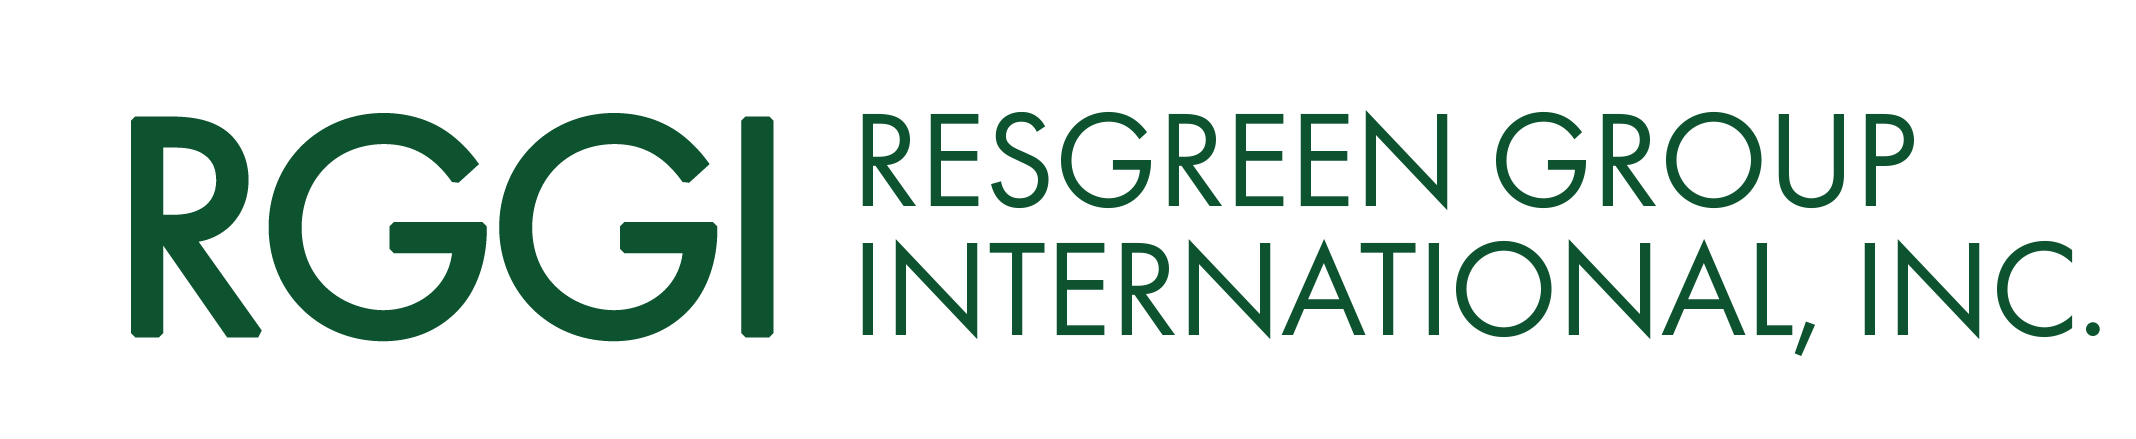 Resgreen Group International, Inc. (RGGI), an Established Maker of Industrial Robotic Products Begins Sales of Wanda, a Disinfecting Mobile Robot in Response to Strong Demand of the Covid Pandemic 8